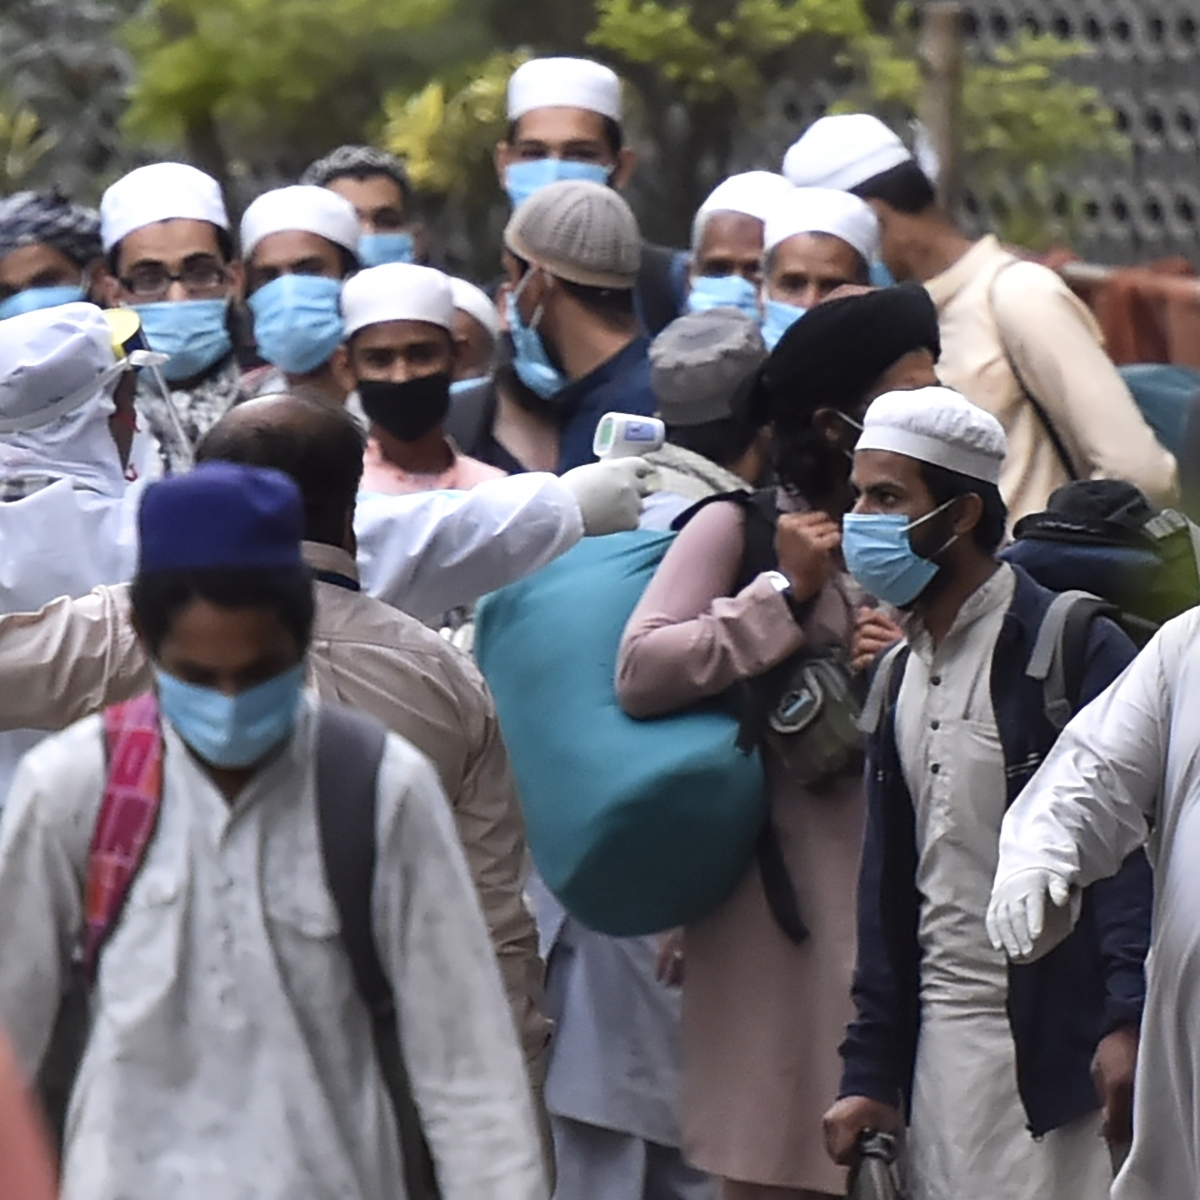 Coronavirus in Mumbai: FIR filed against 150 Tablighi Jamaat members for violating quarantine orders